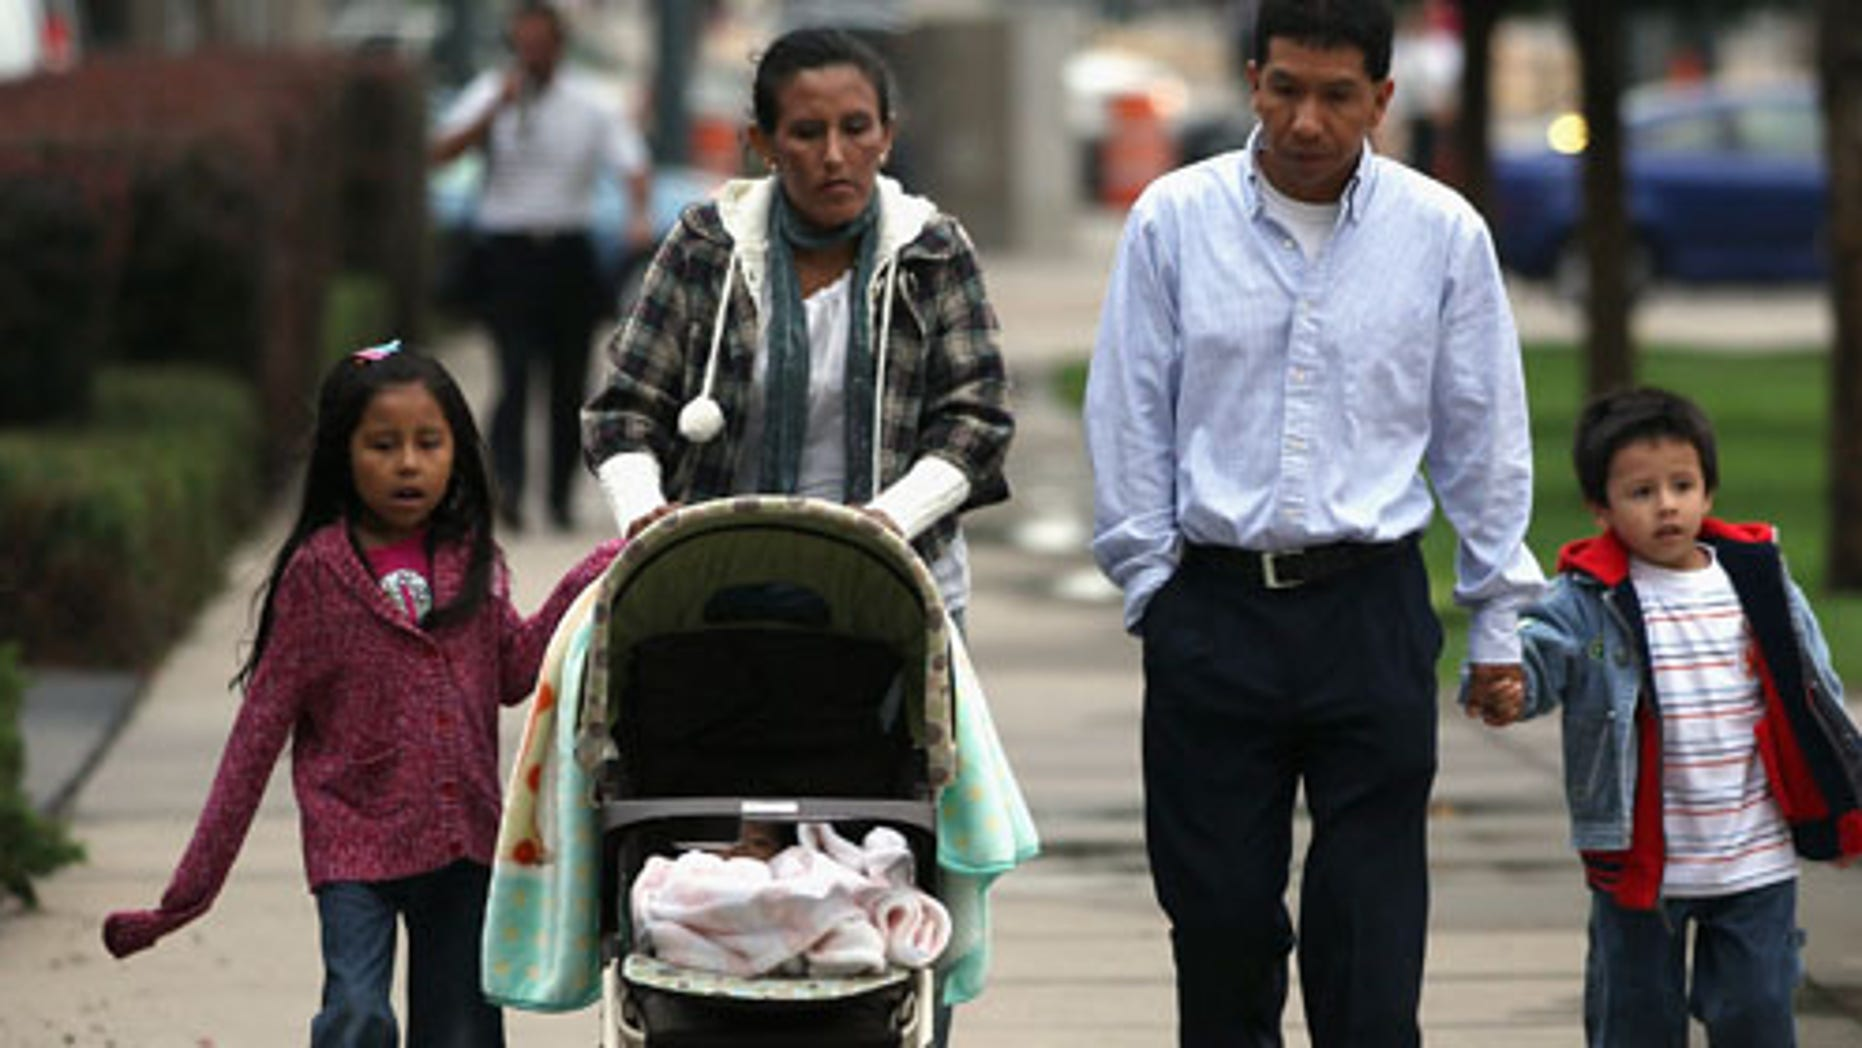 Undocumented Mexican immigrant Jeanette Vizguerra (L), her husband Salvador and their children Luna, 7, and Roberto, 5, walk to her immigration hearing in federal court on July 13, 2011 in Denver, Colorado.